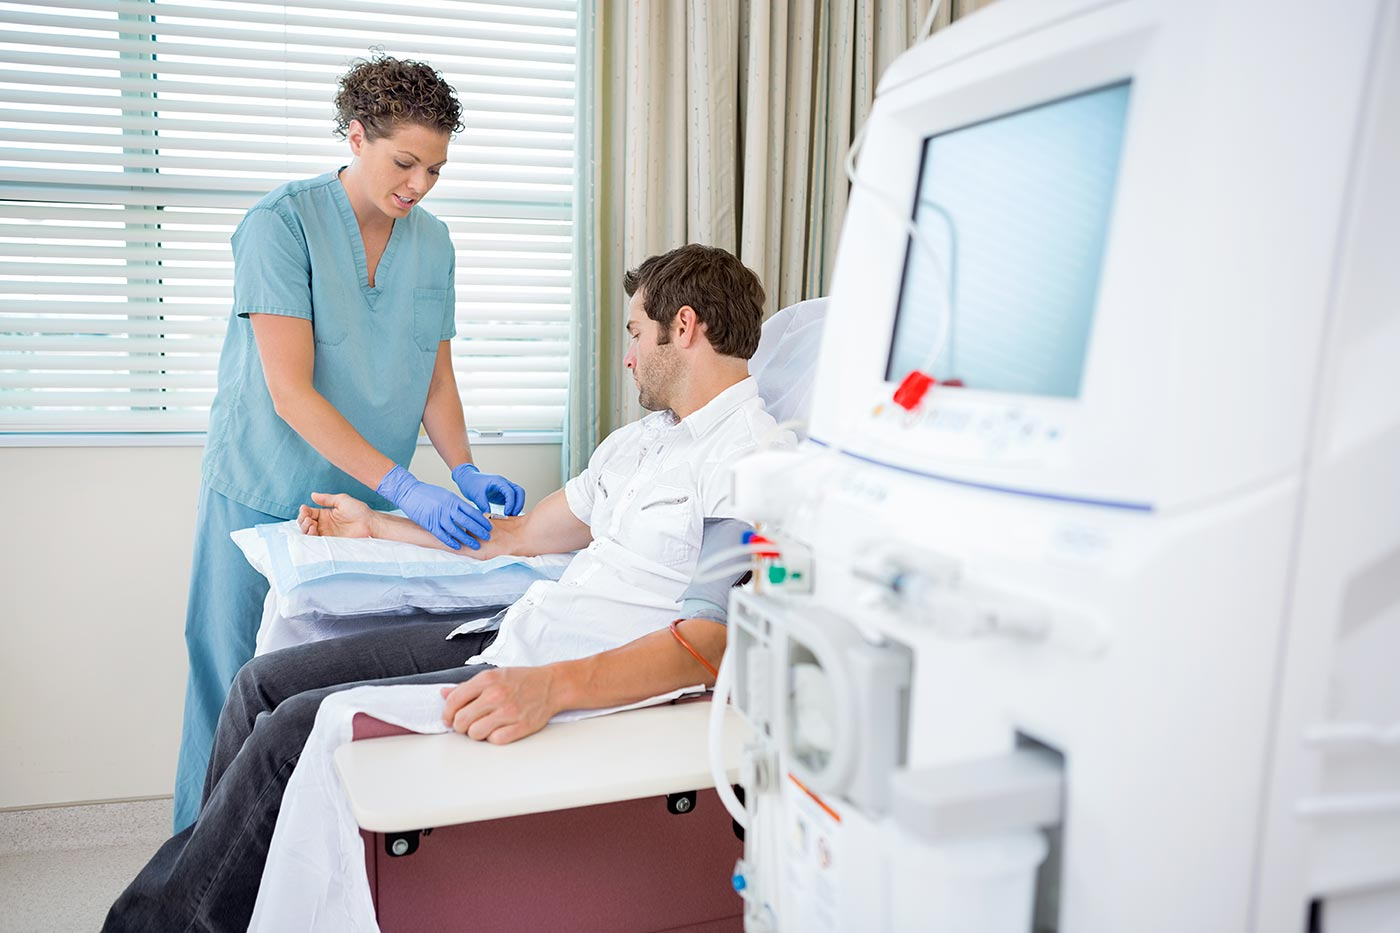 Image of man receiving dialysis from woman nurse.